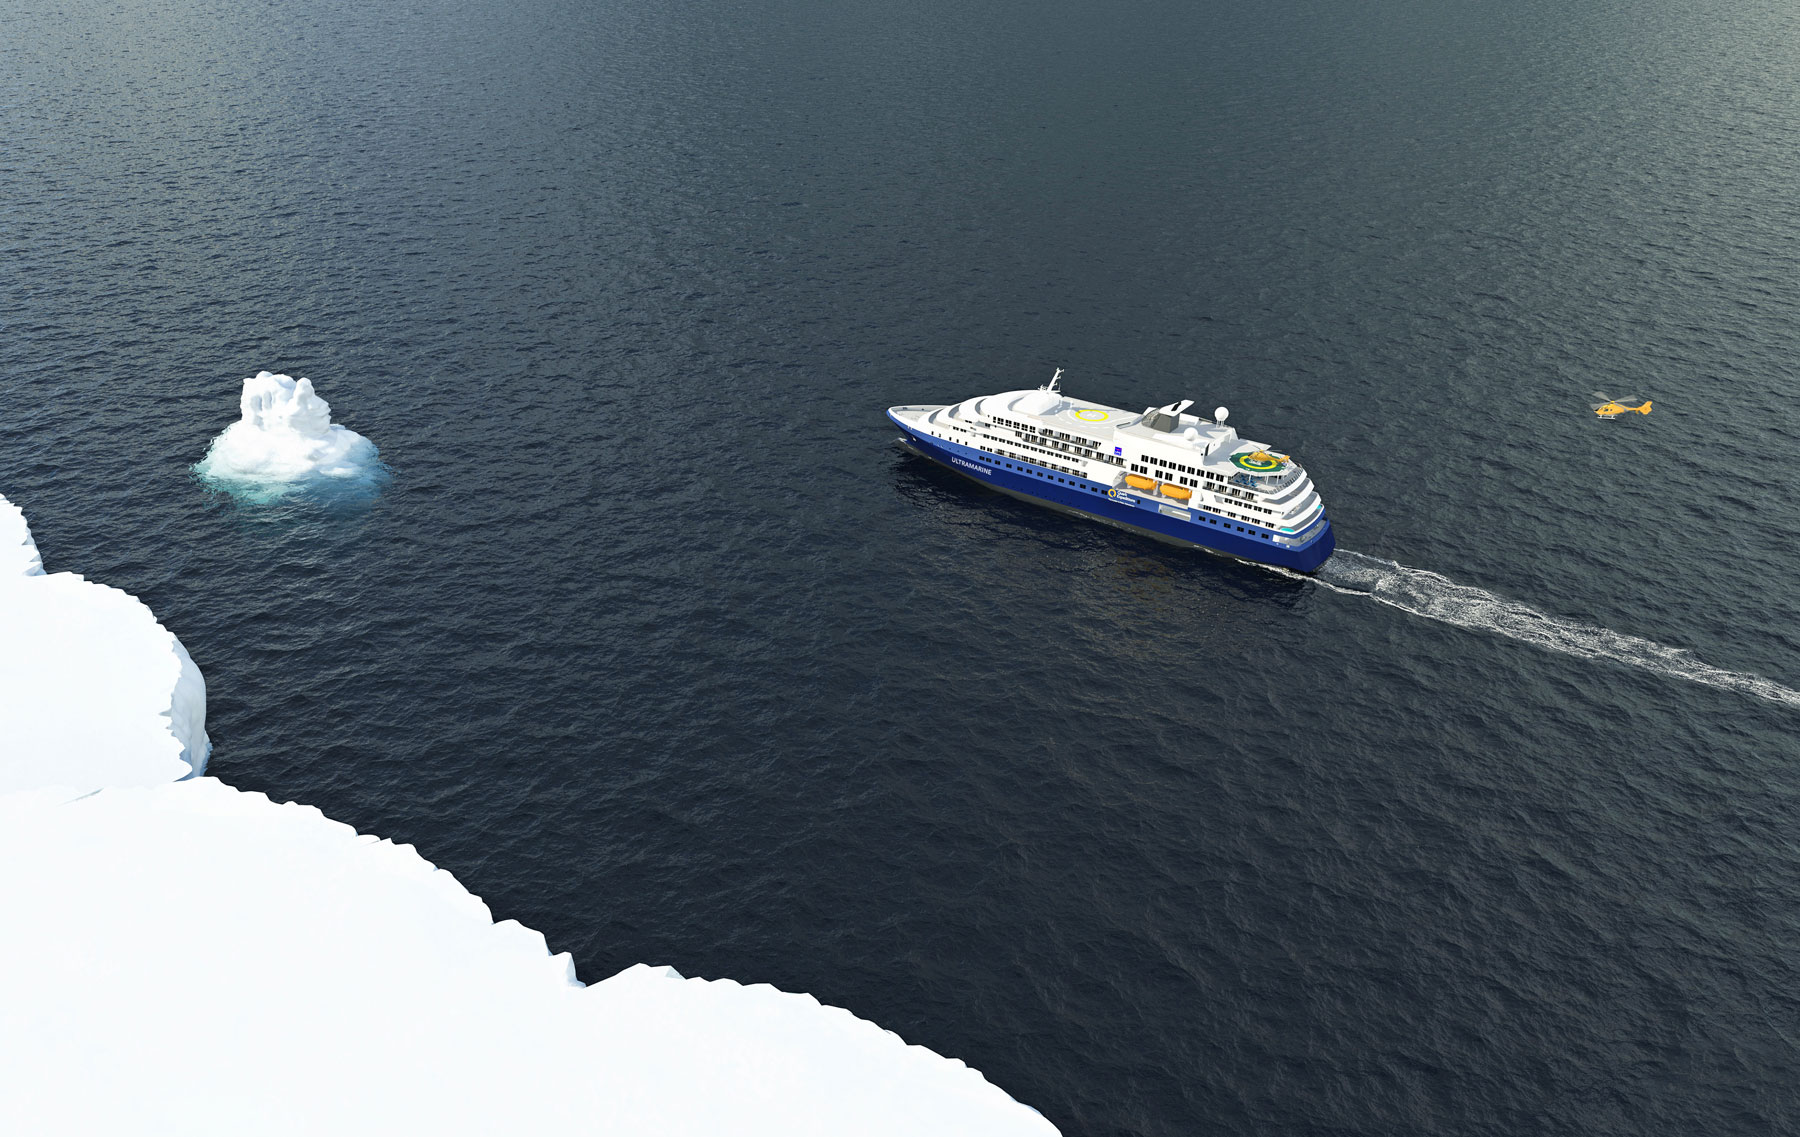 Ship (Ultramarine) rendering from the air.